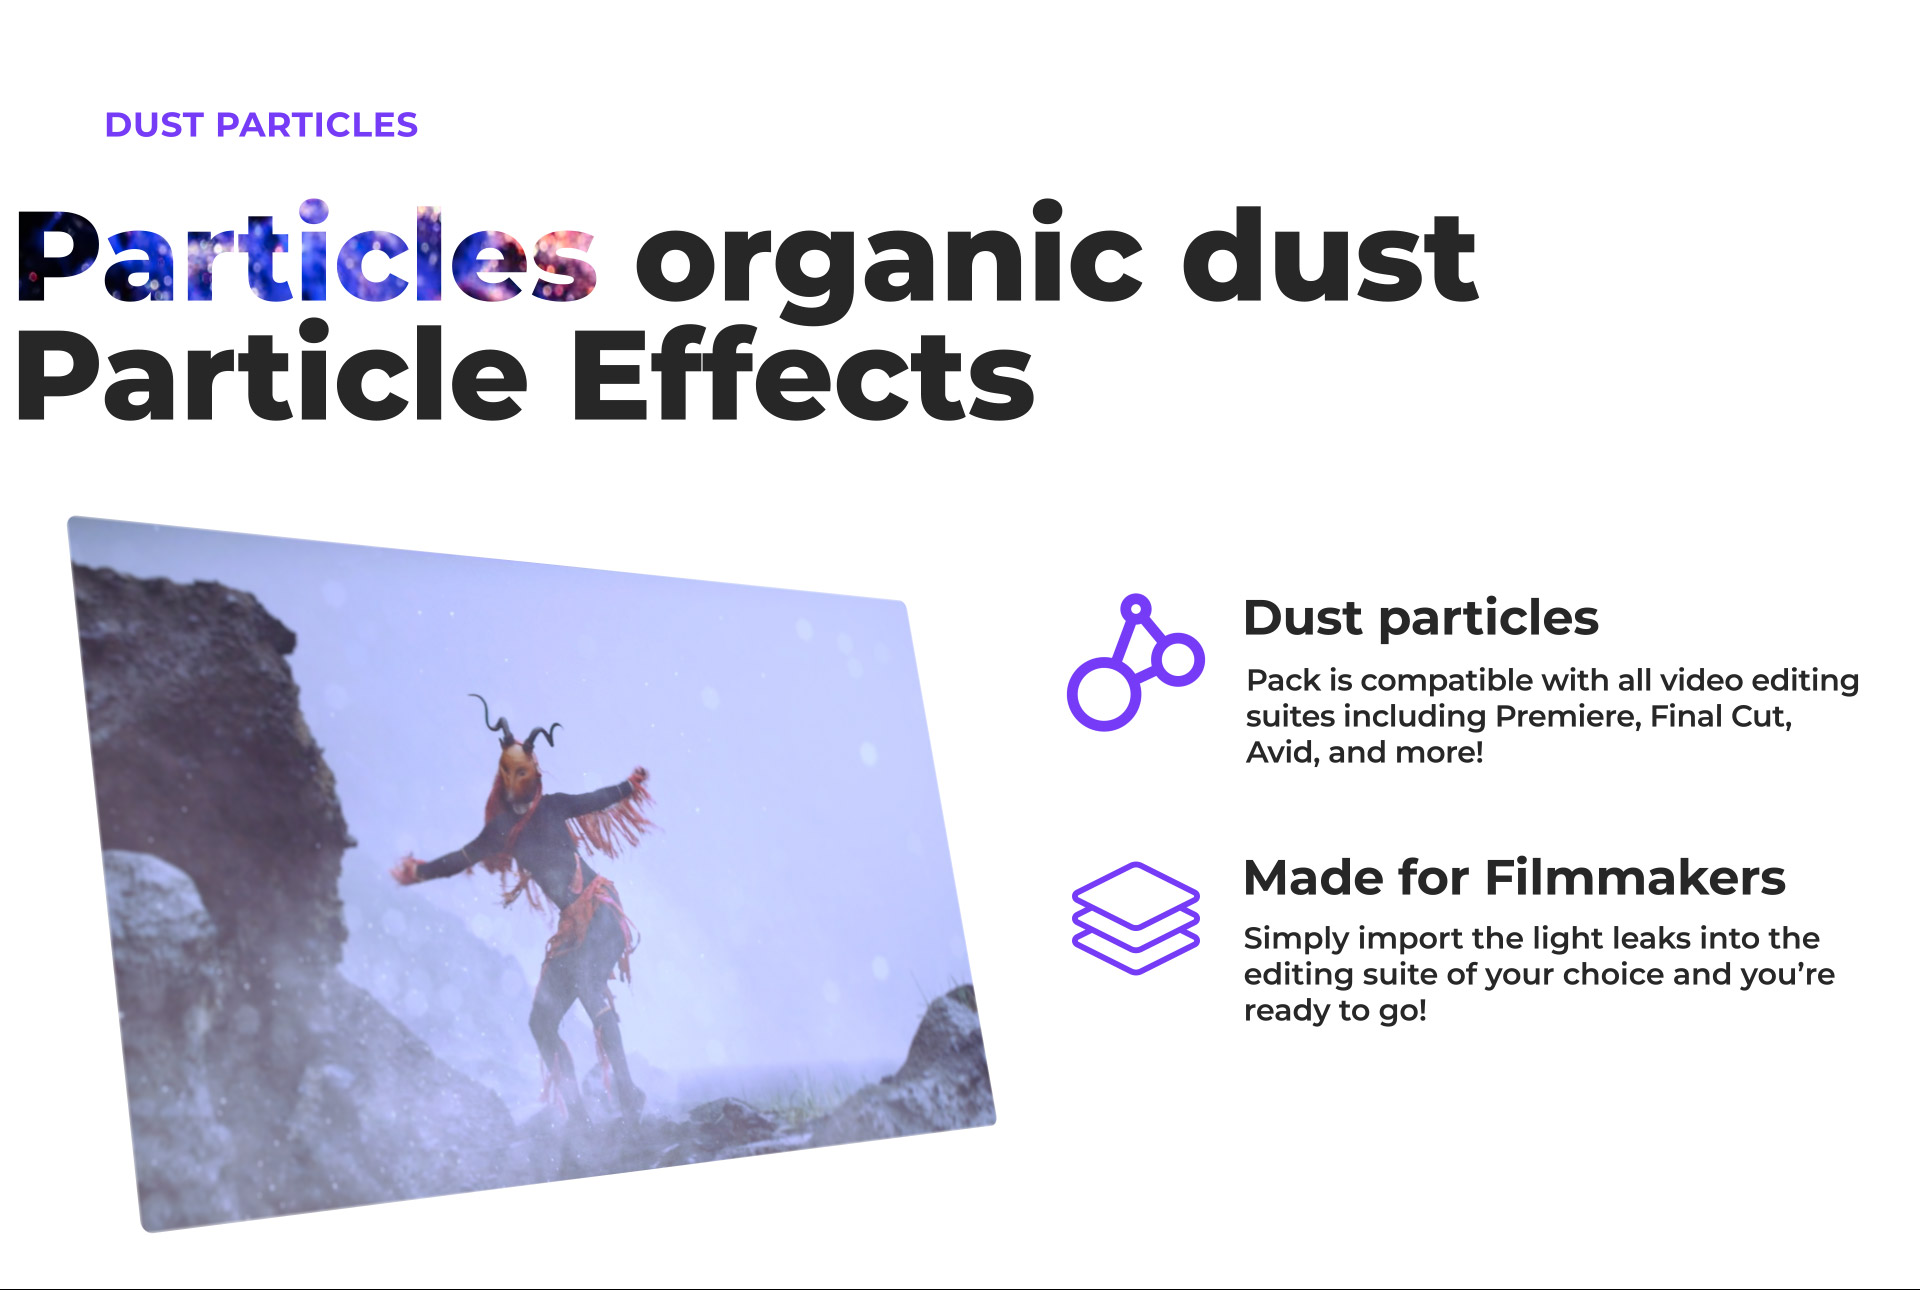 Particles-00.jpg